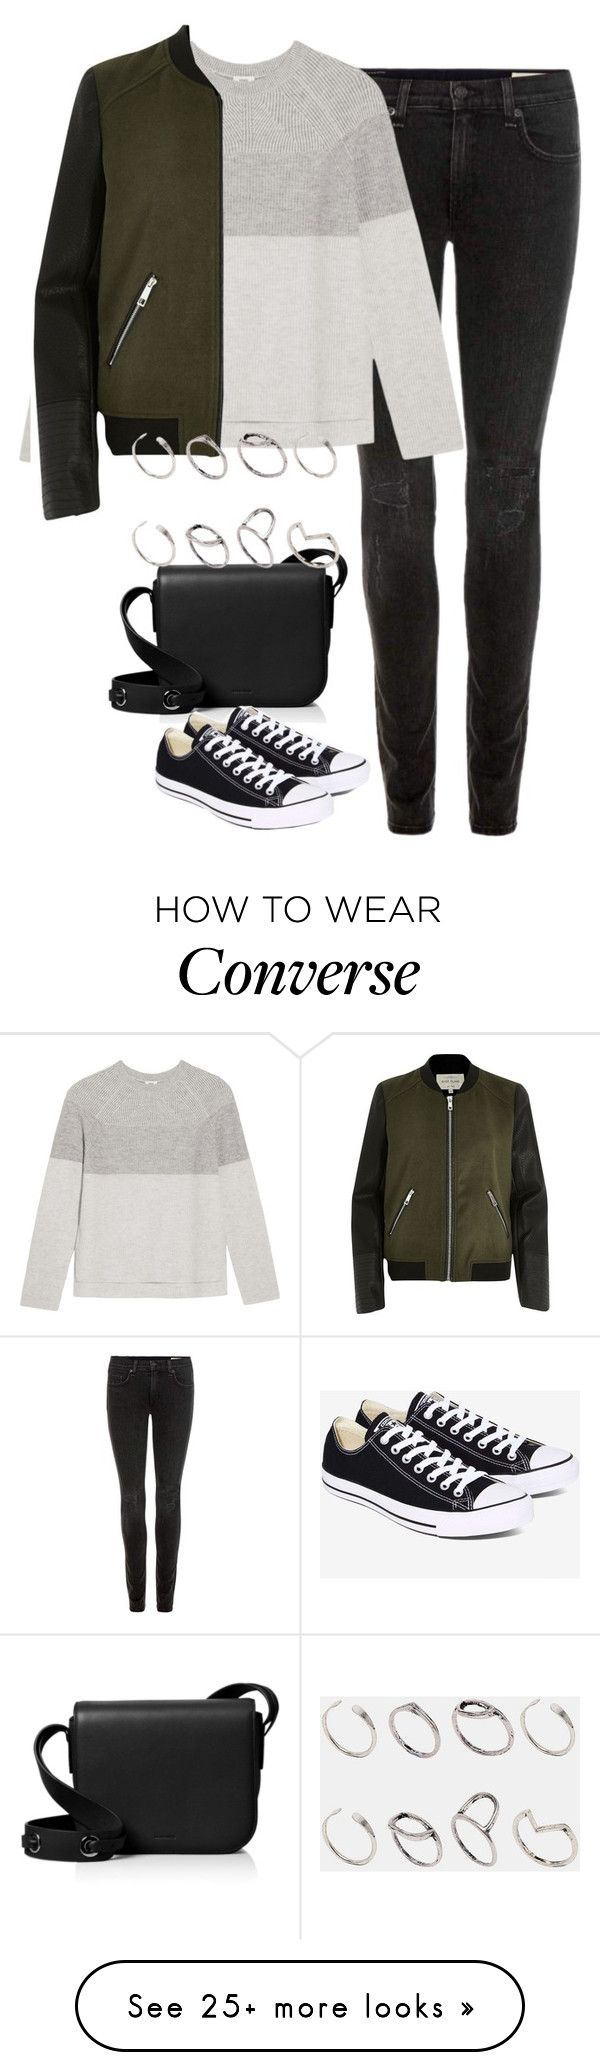 """Untitled #4334"" by keliseblog on Polyvore featuring rag & bone, Vince, River Island, AllSaints, Converse and ASOS"